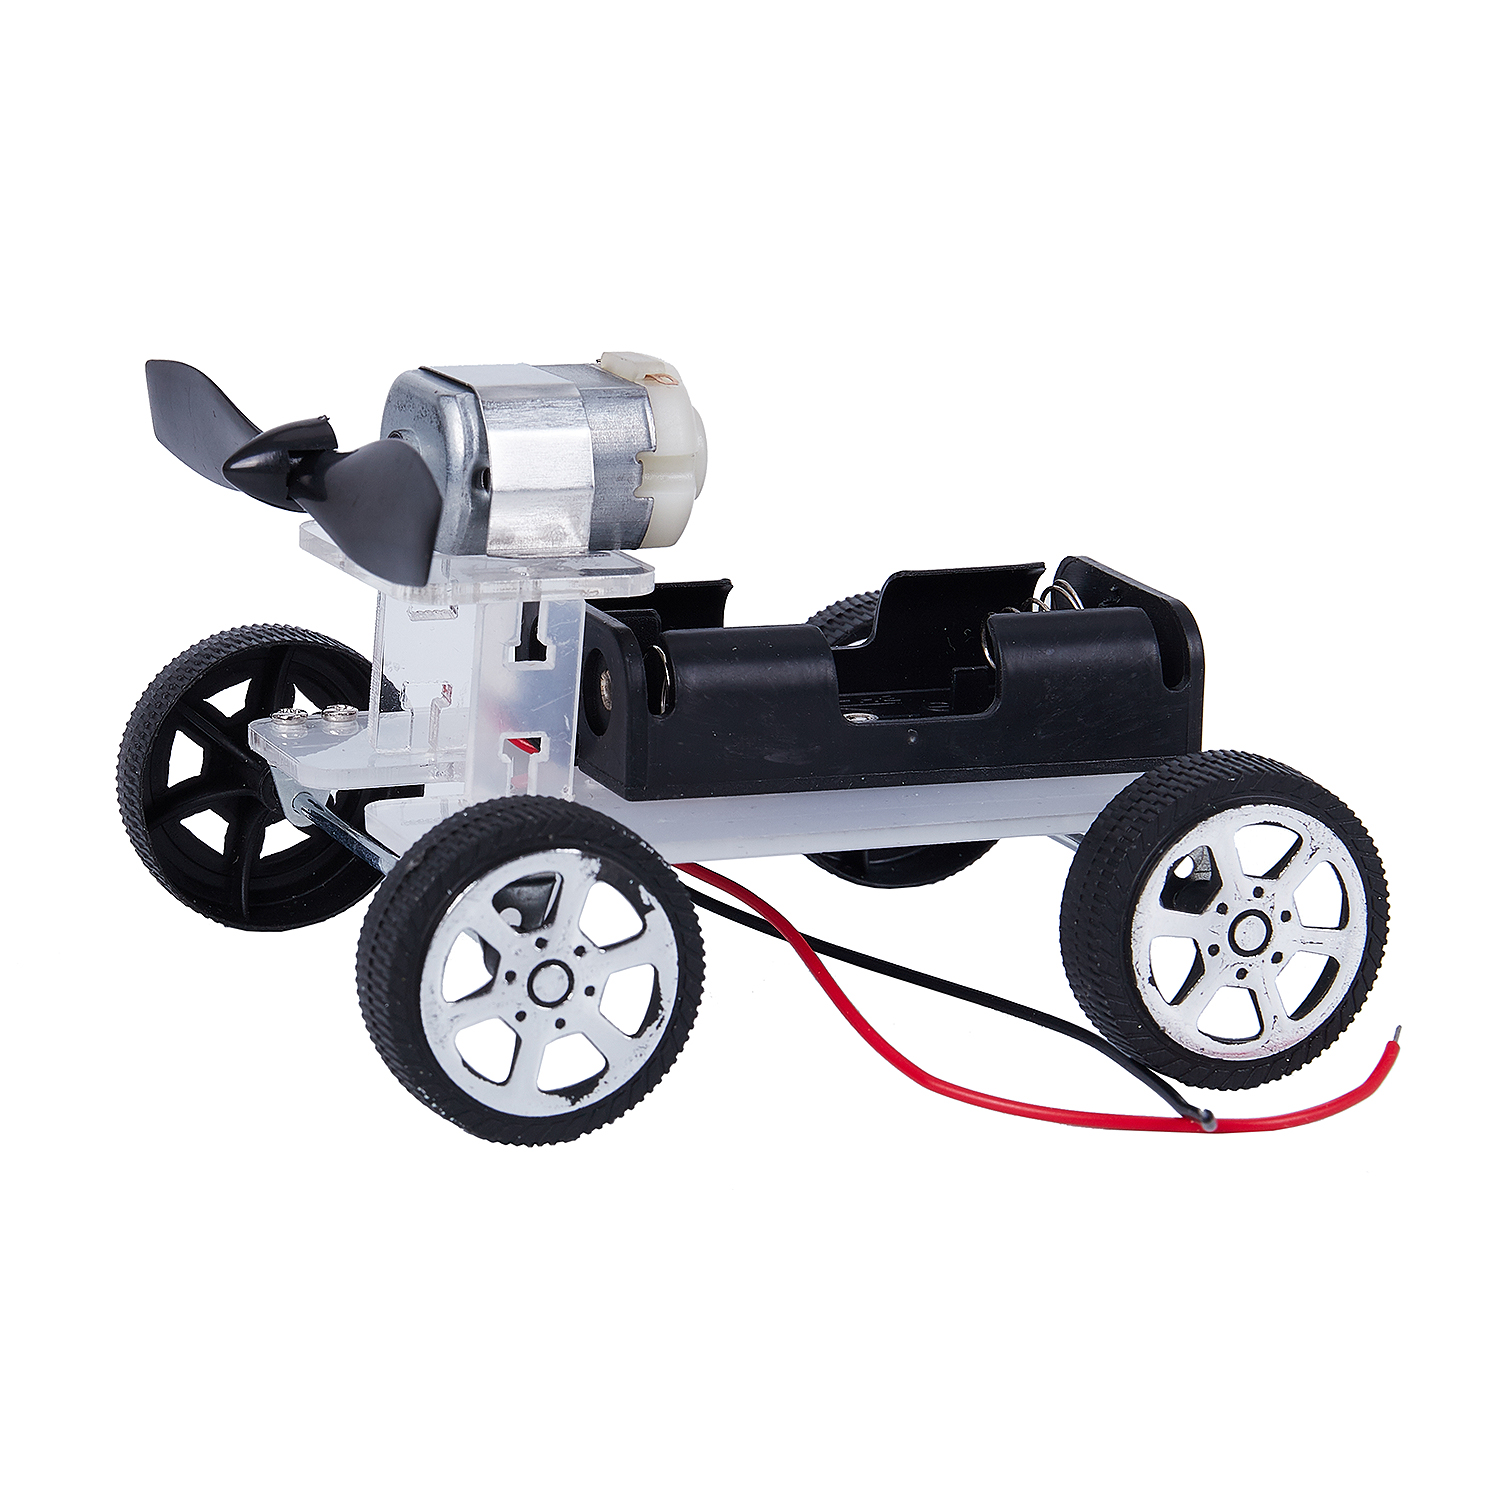 Mini DIY Puzzle Wind Car Child Educational Toy 130Brush Motor Robot For Arduino